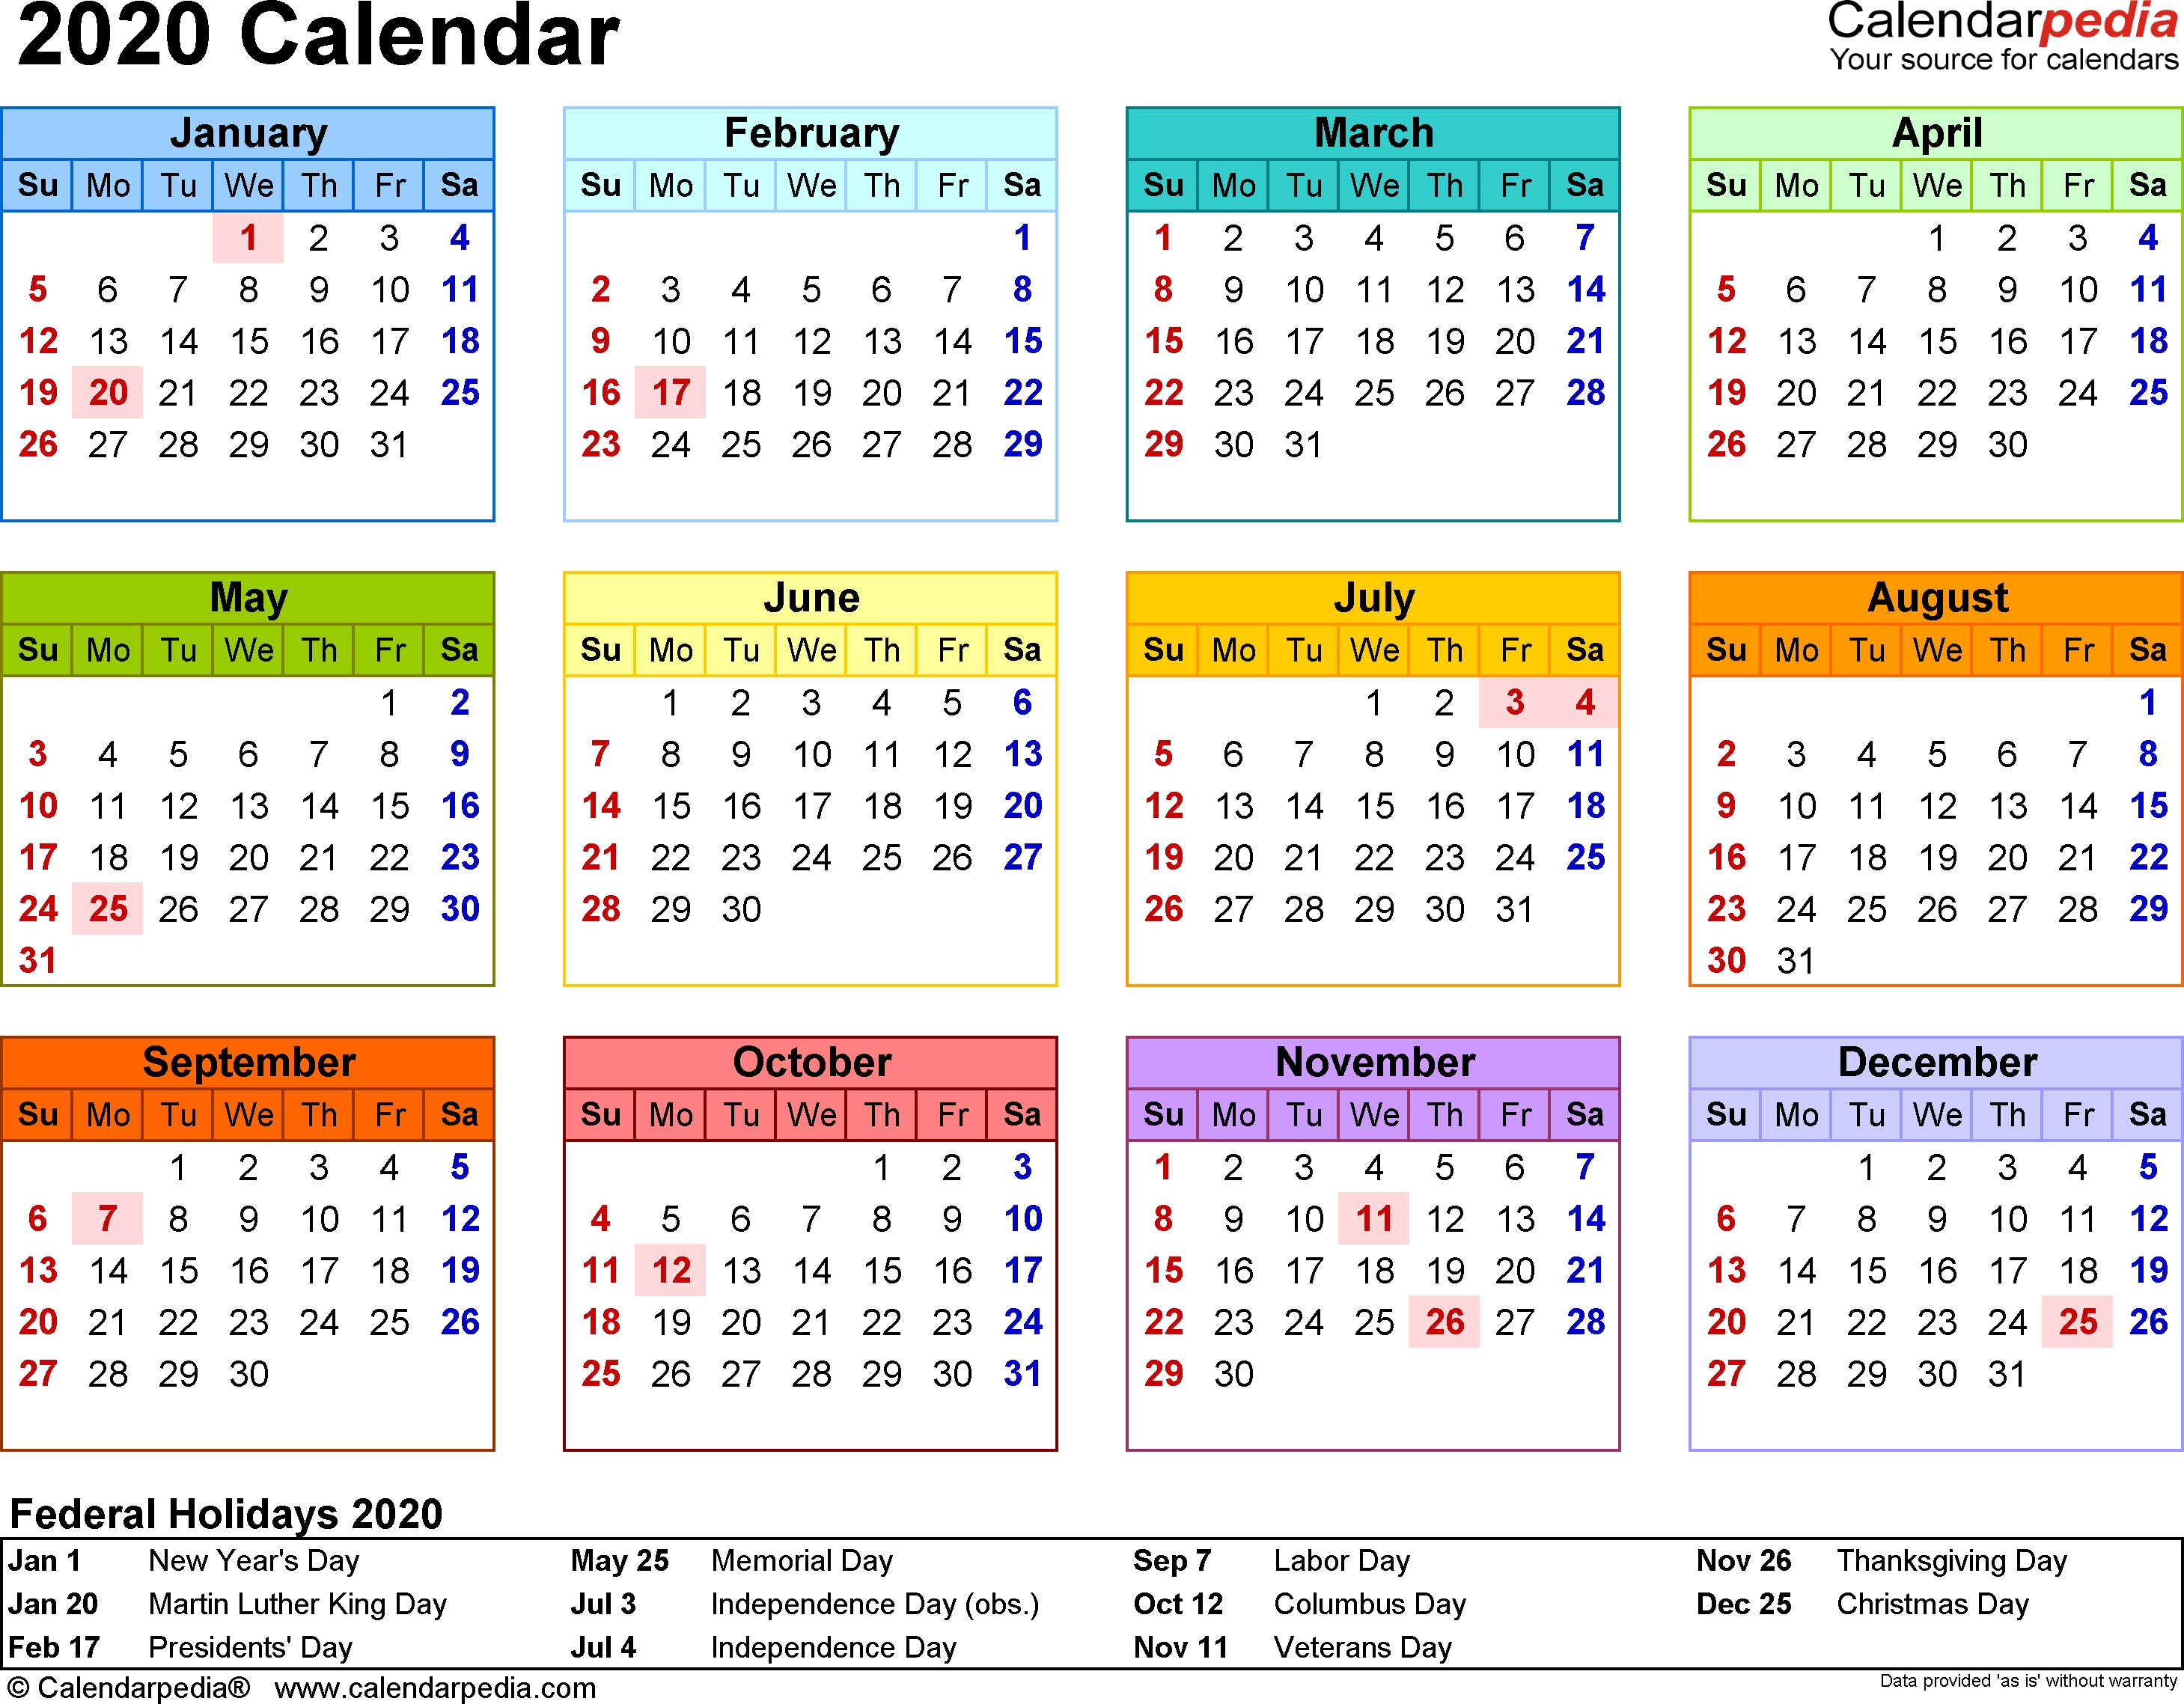 2020 Calendar Pdf - 17 Free Printable Calendar Templates with Year At A Glance Calendar 2020